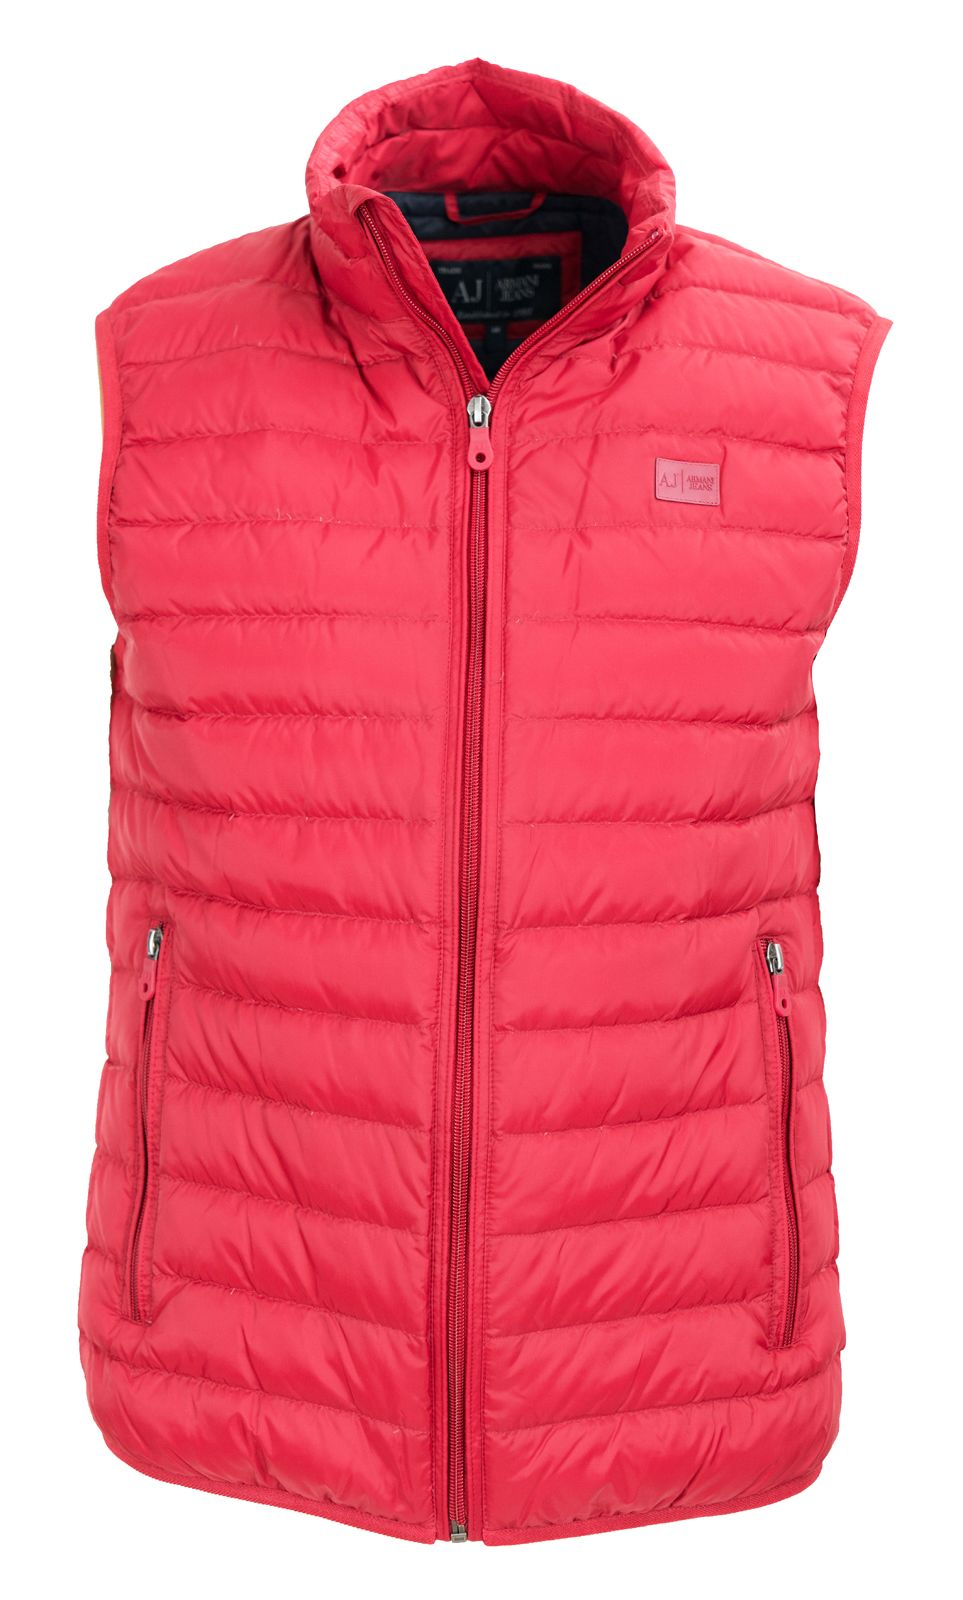 Armani Jeans Classic Padded Gilet